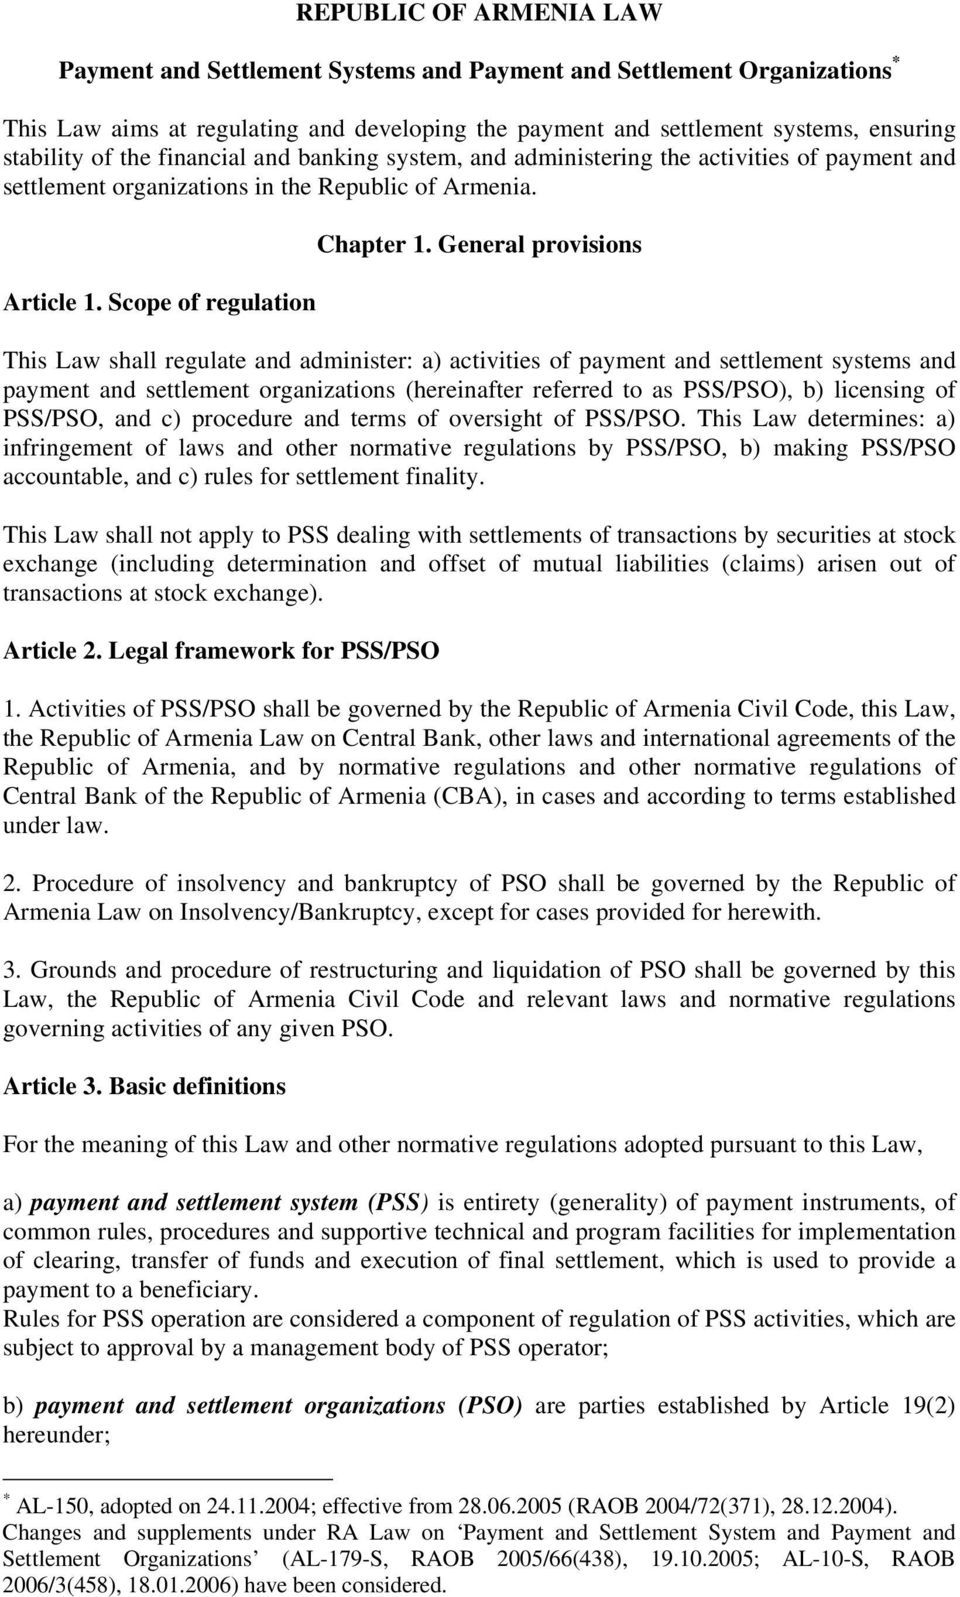 General provisions This Law shall regulate and administer: a) activities of payment and settlement systems and payment and settlement organizations (hereinafter referred to as PSS/PSO), b) licensing